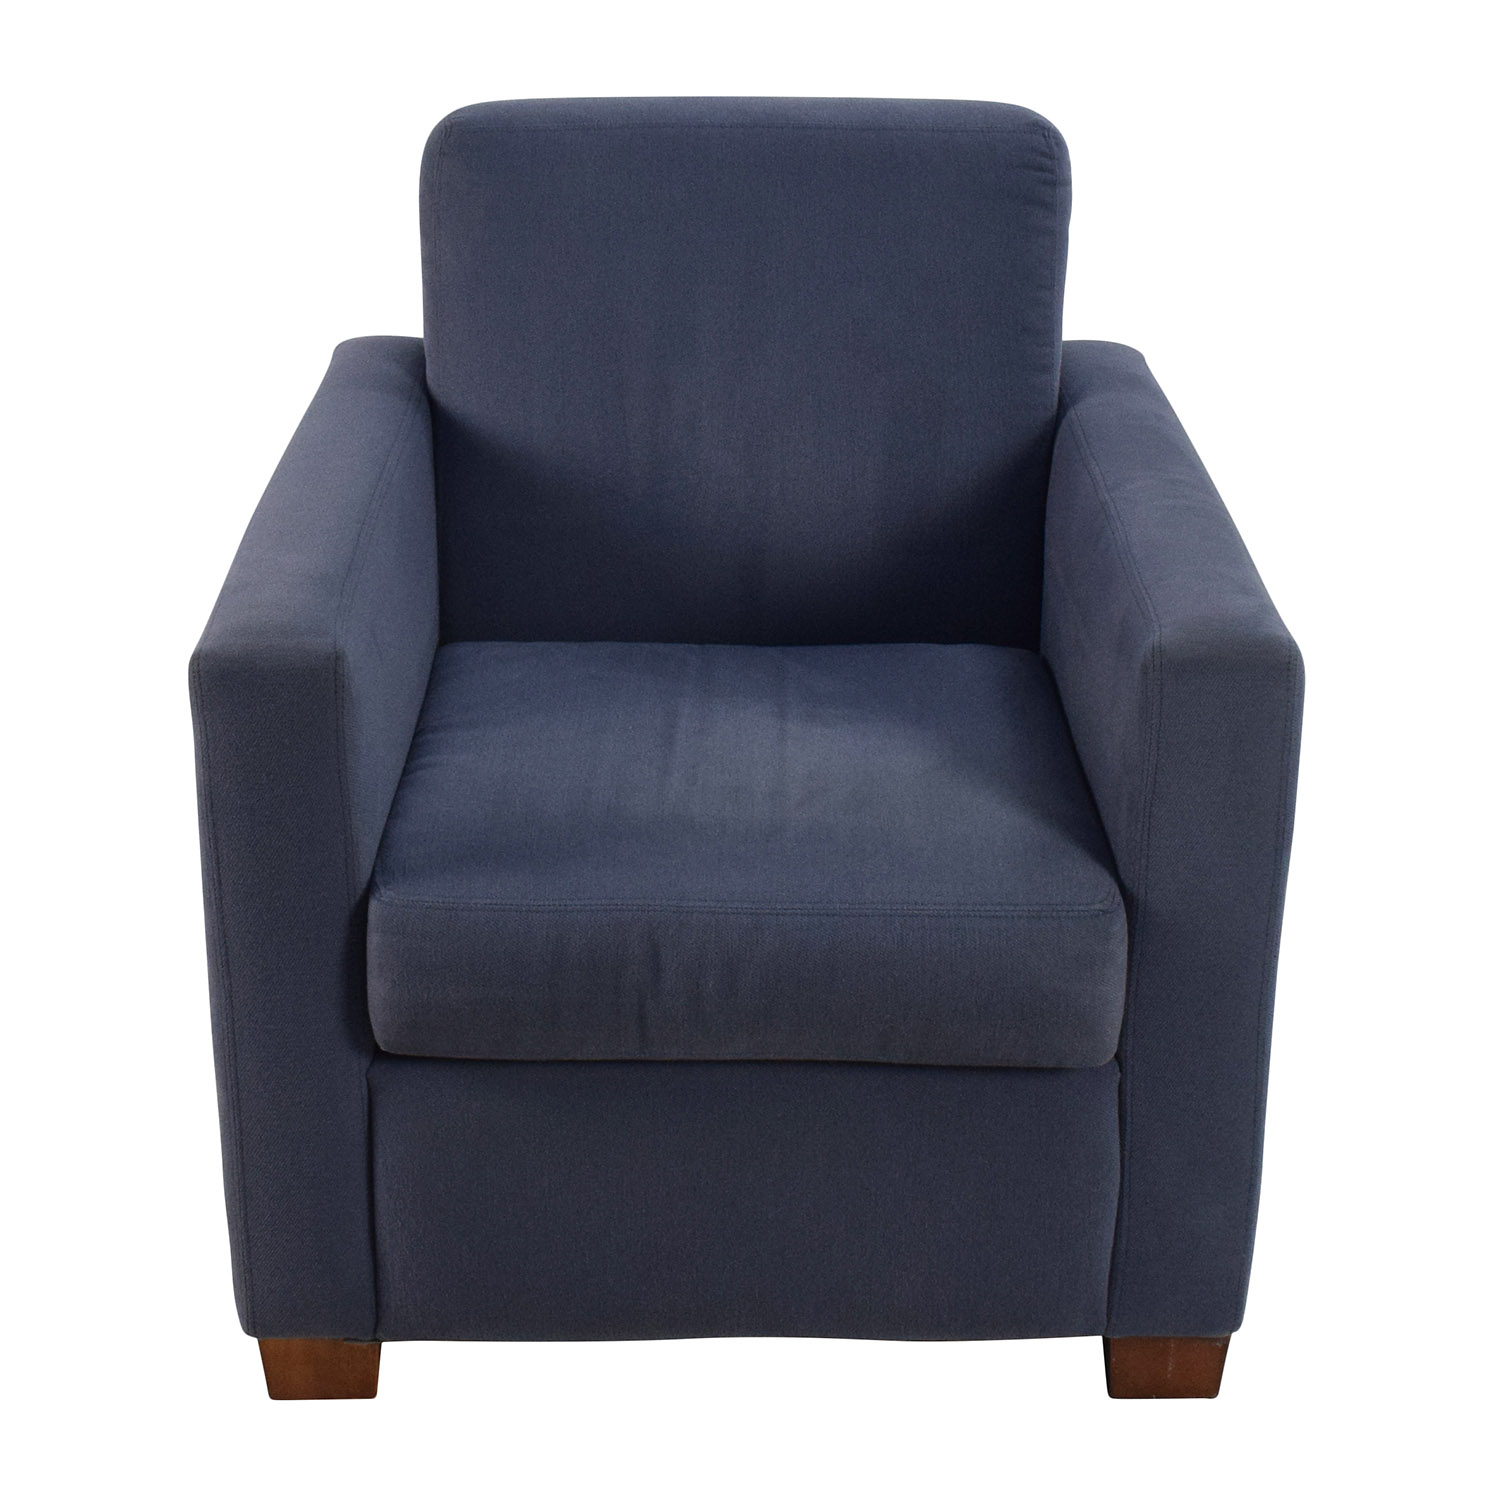 Blue Accent Single Seat Cushion Chair on sale